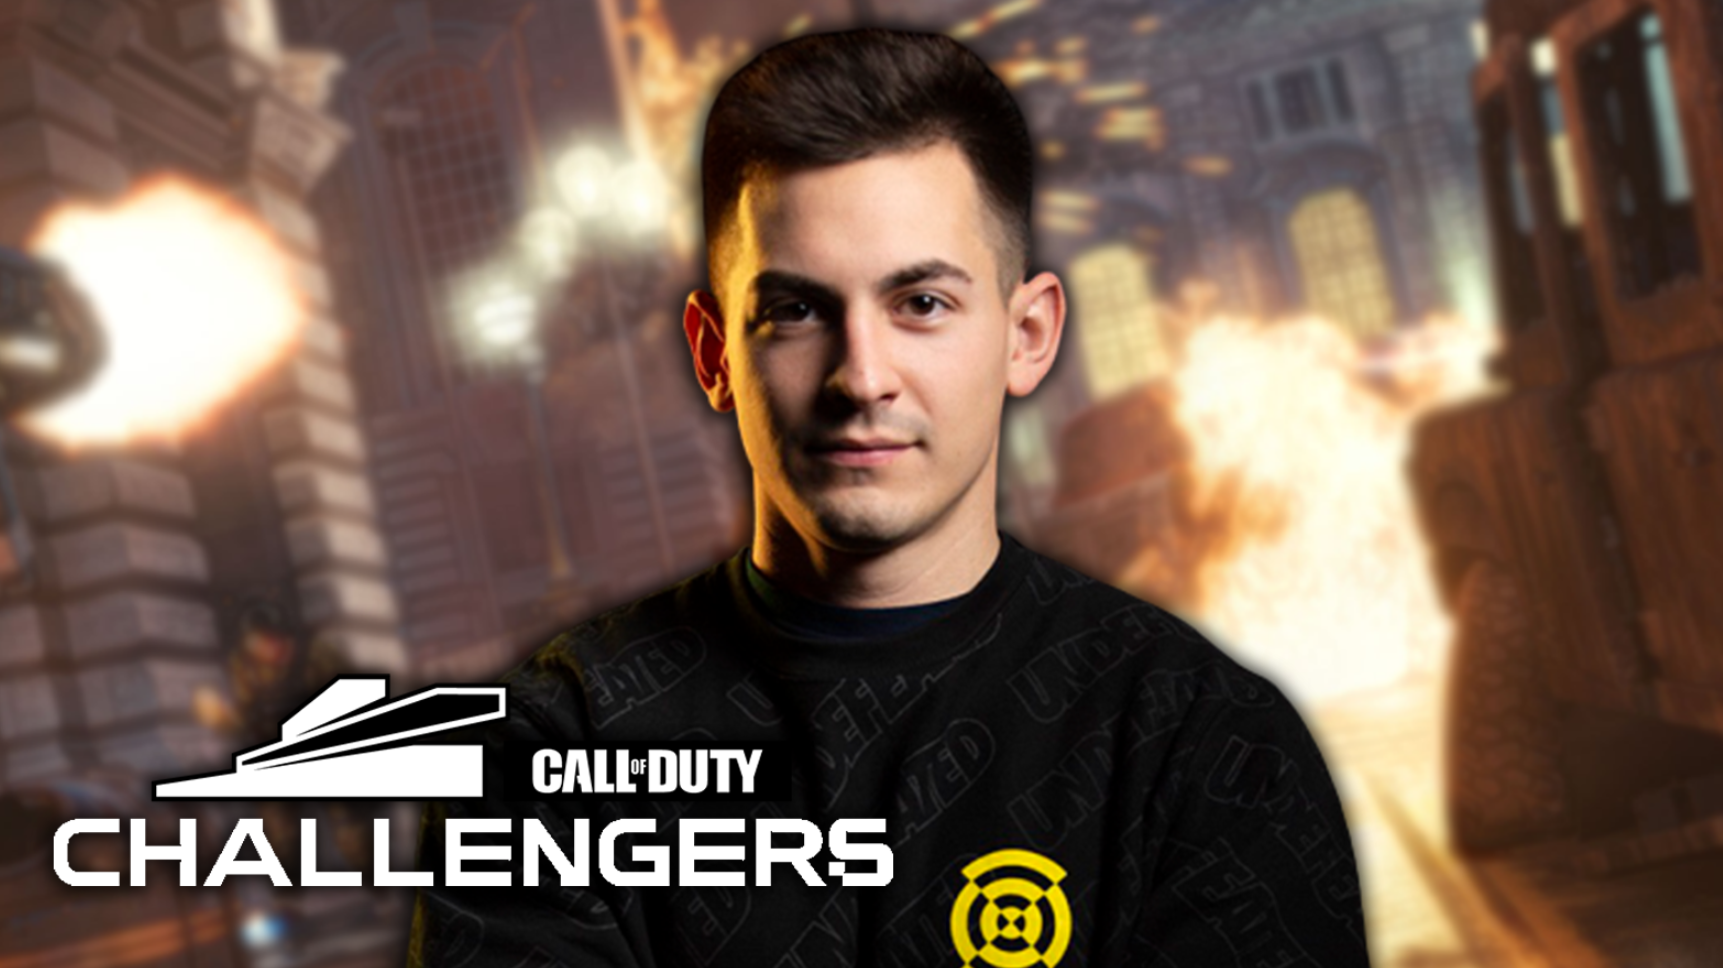 Call of Duty Modern Warfare gameplay / Censor New York Subliners player photo